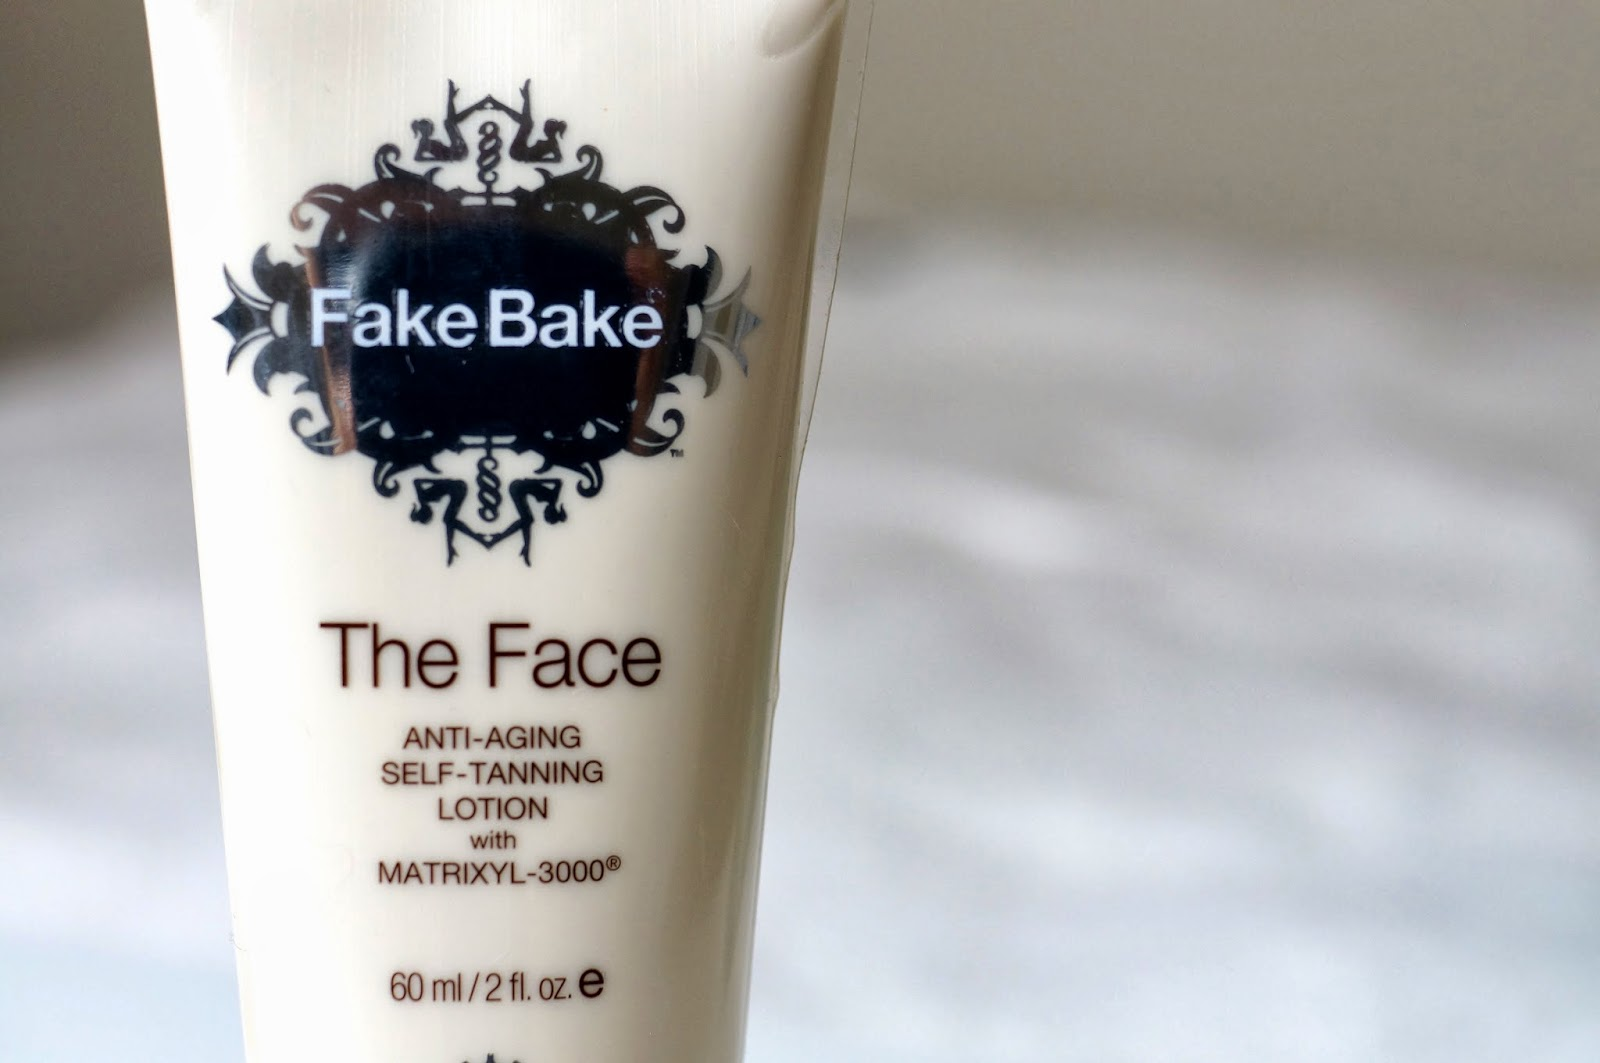 the face, anti-aging self-tanning lotion